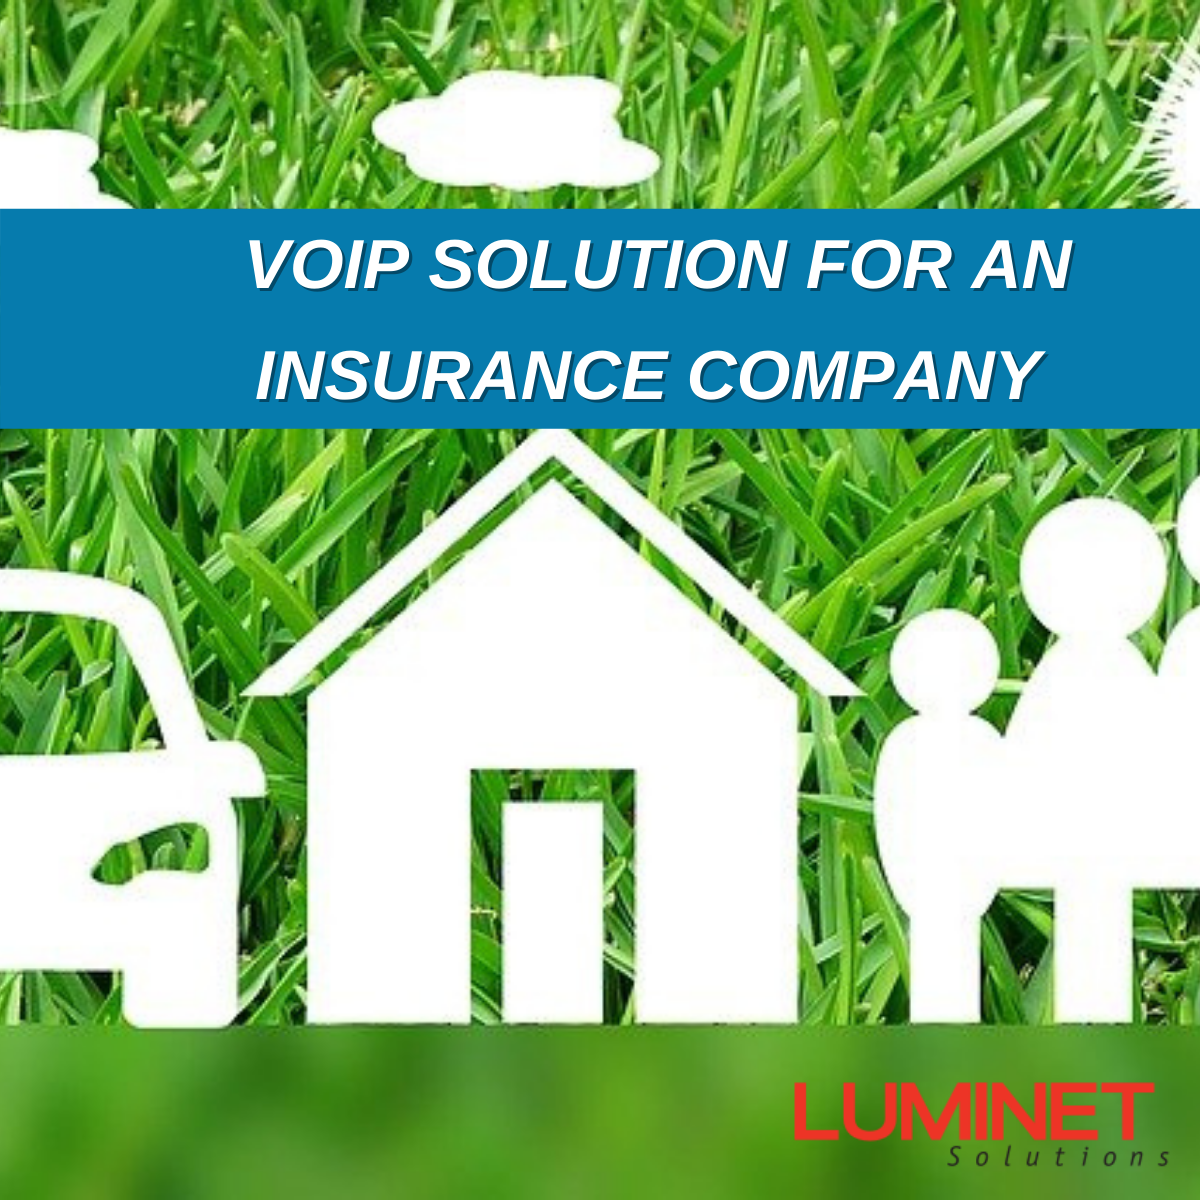 Icon Of Green Grass And House Silhouette Representing VoIP Communications For An Insurance Company